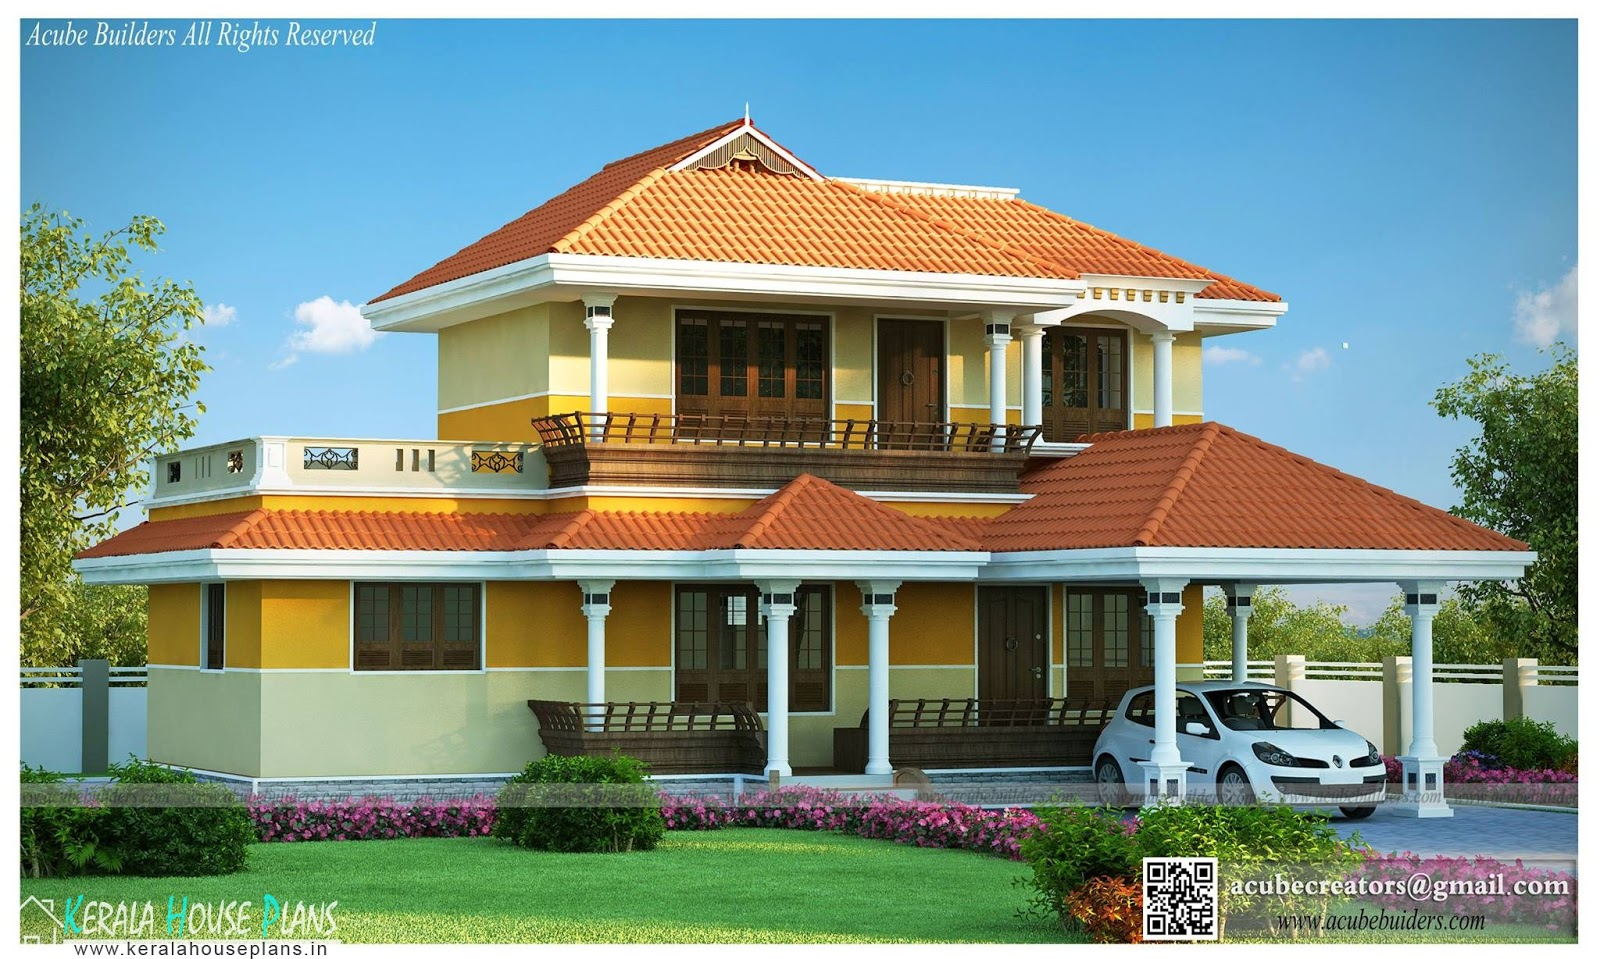 Traditional house plans in kerala kerala house plans for Home designs traditional